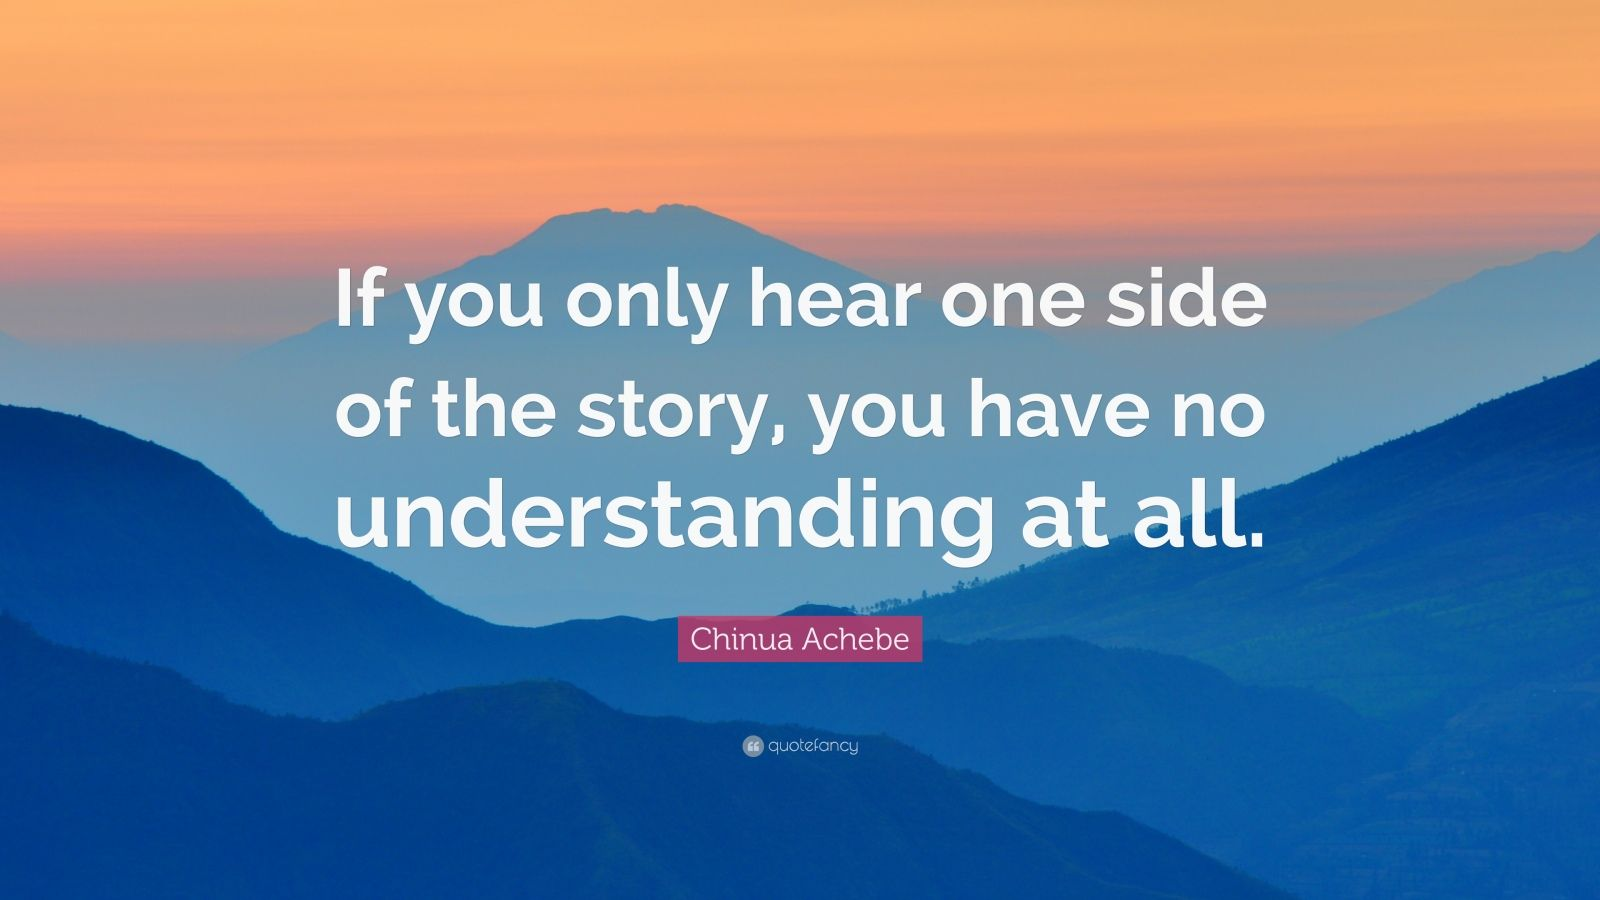 Thought Provoking Quotes Wallpapers Chinua Achebe Quote If You Only Hear One Side Of The